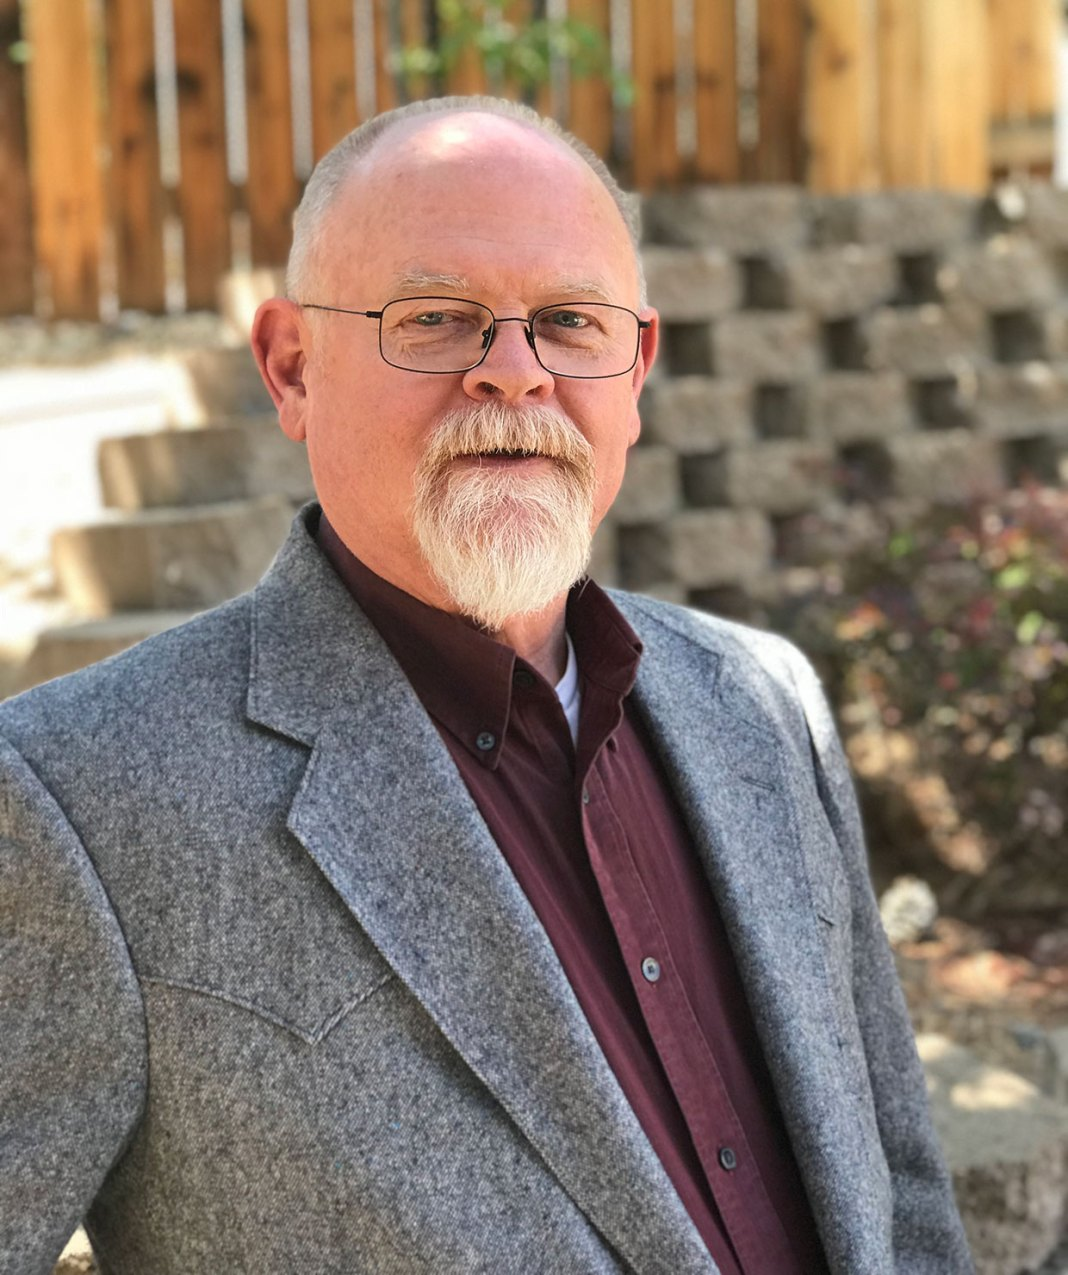 John Wood is candidate for Carson City Board of Supervisors Ward 1 - image provided by the candidate.